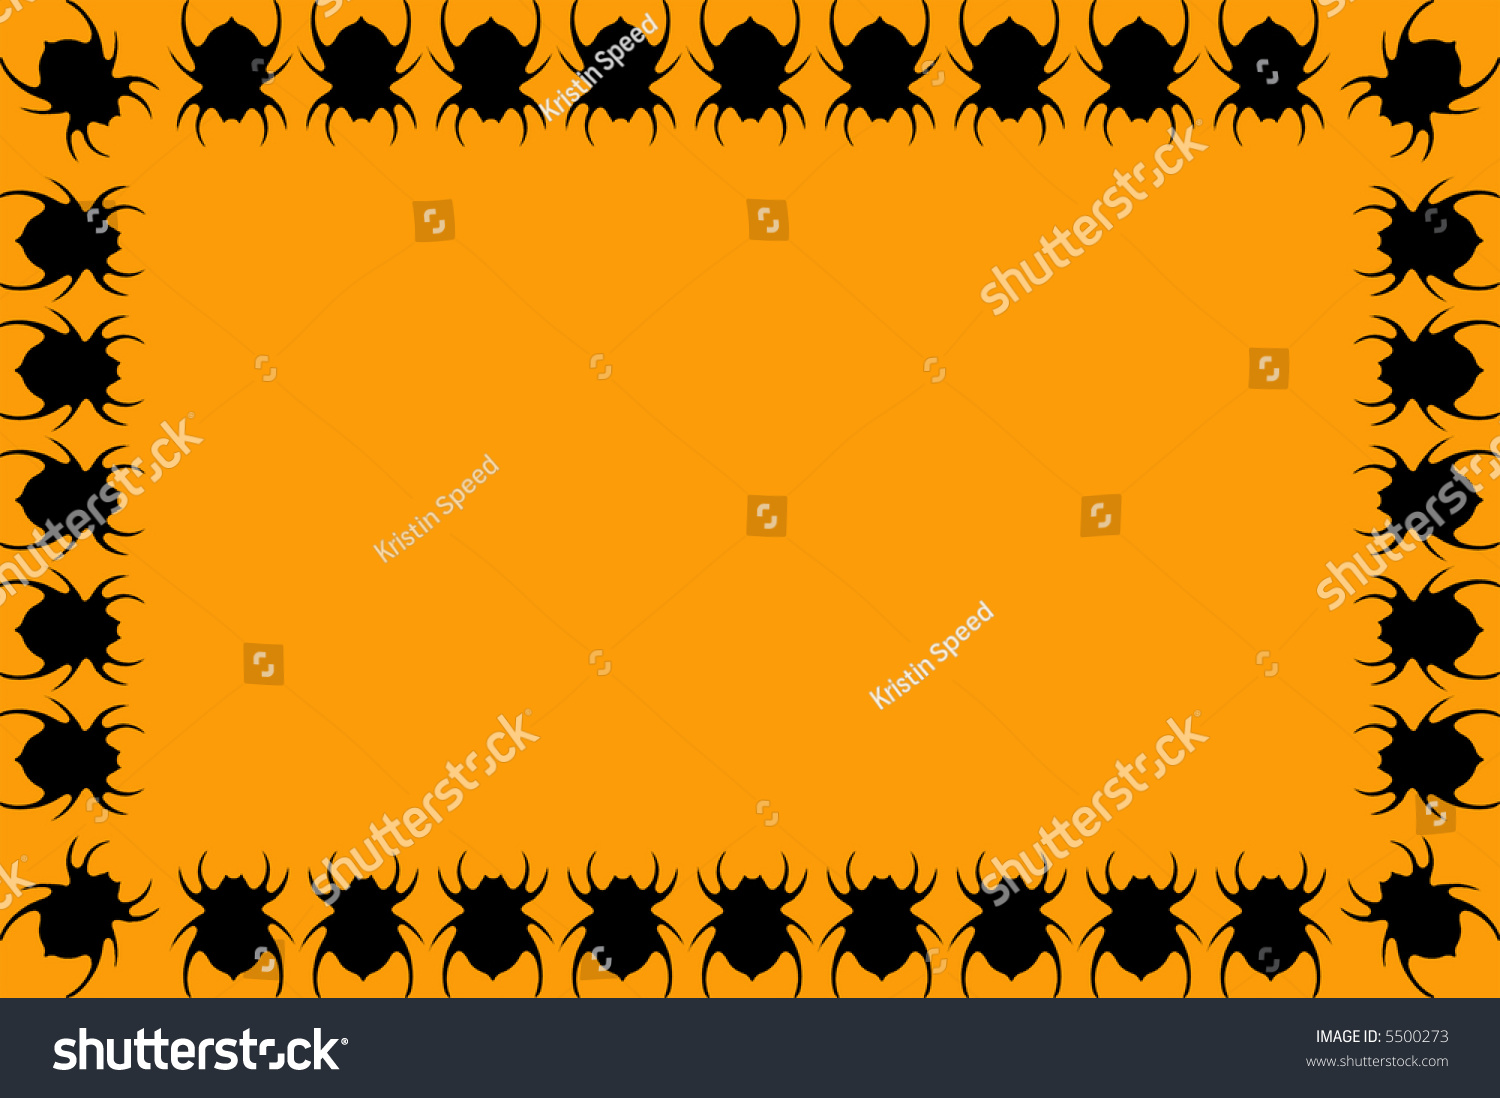 spider frame background halloween themes stock illustration 5500273